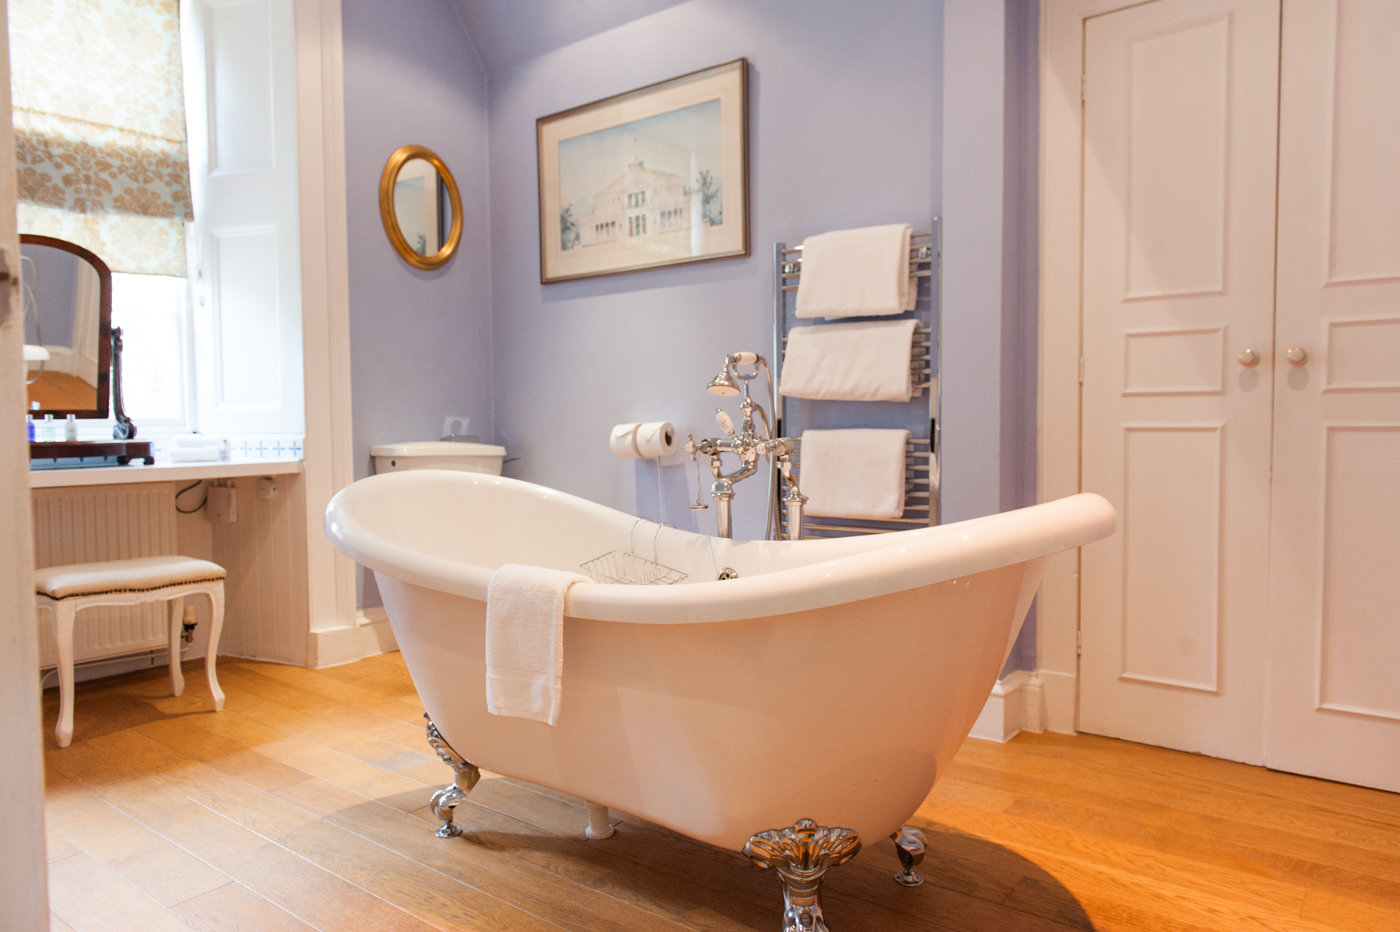 interior room photography, commercial photography website photography, product shots glasgow